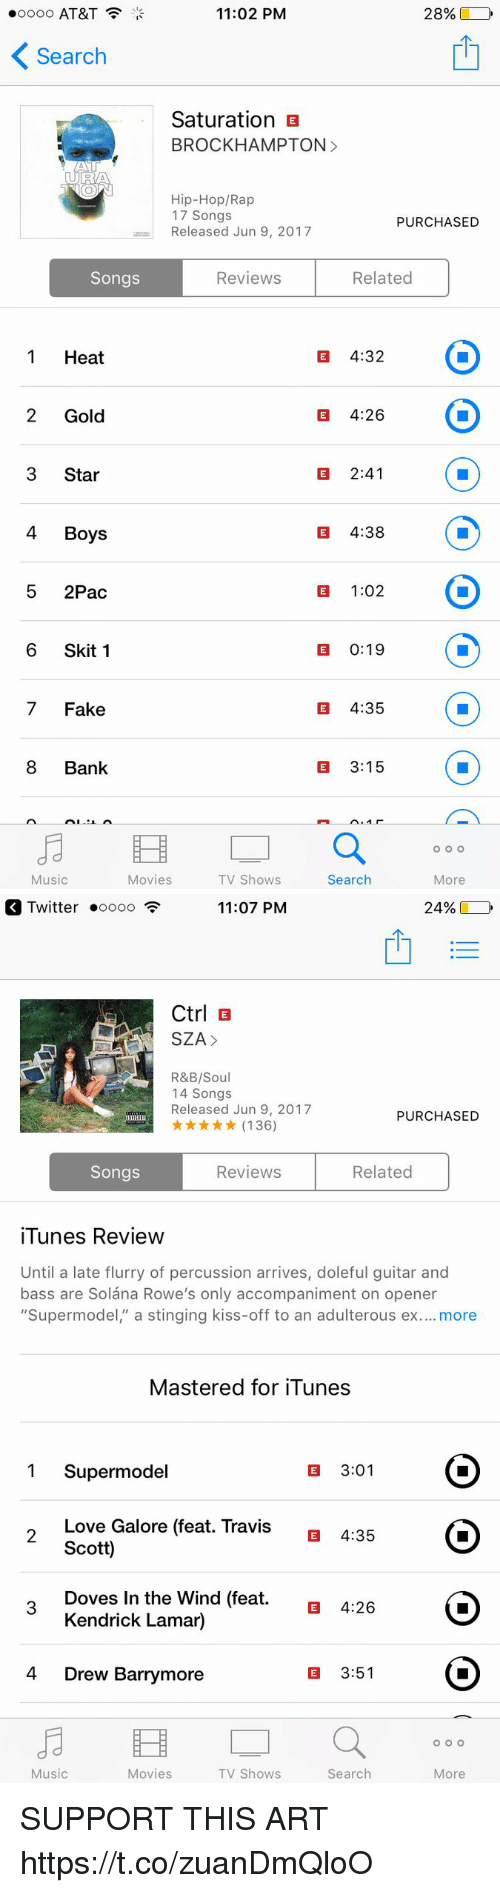 """Fake, Funny, and Kendrick Lamar: 11:02 PM  oooo AT&T  Search  Saturation E  BROCK HAMPTON  MANT  UR/A  Hip-Hop/Rap  17 Songs  PURCHASED  Released Jun 9, 2017  Related  Songs  Reviews  E 4:32  Heat  E 4:26  Gold  2:41  Star  4 Boys  E 4:38  E 1:02  2Pac  6 Skit 1  E 0:19  E 4:35  Fake  3:15  Bank  O O O  More  Music  Movies  TV Shows  Search   249%  Twitter .oooo  11:07 PM  Ctrl E  SZA  R&B/Soul  14 Songs  Released Jun 9, 2017  PURCHASED  (136)  Related  Songs  Reviews  iTunes Review  Until a late flurry of percussion arrives, doleful guitar and  bass are Solana Rowe's only accompaniment on opener  """"Supermodel,"""" a stinging kiss-off to an adulterous ex  more  Mastered for iTunes  3:01  1 Supermode  Love Galore (feat. Travis  E 4:35  O  Scott)  Doves In the Wind (feat.  E 4:26  Kendrick Lamar)  E 3:51  4 Drew Barrymore  O O O  Music  Search  Movies  TV Shows  More SUPPORT THIS ART https://t.co/zuanDmQloO"""